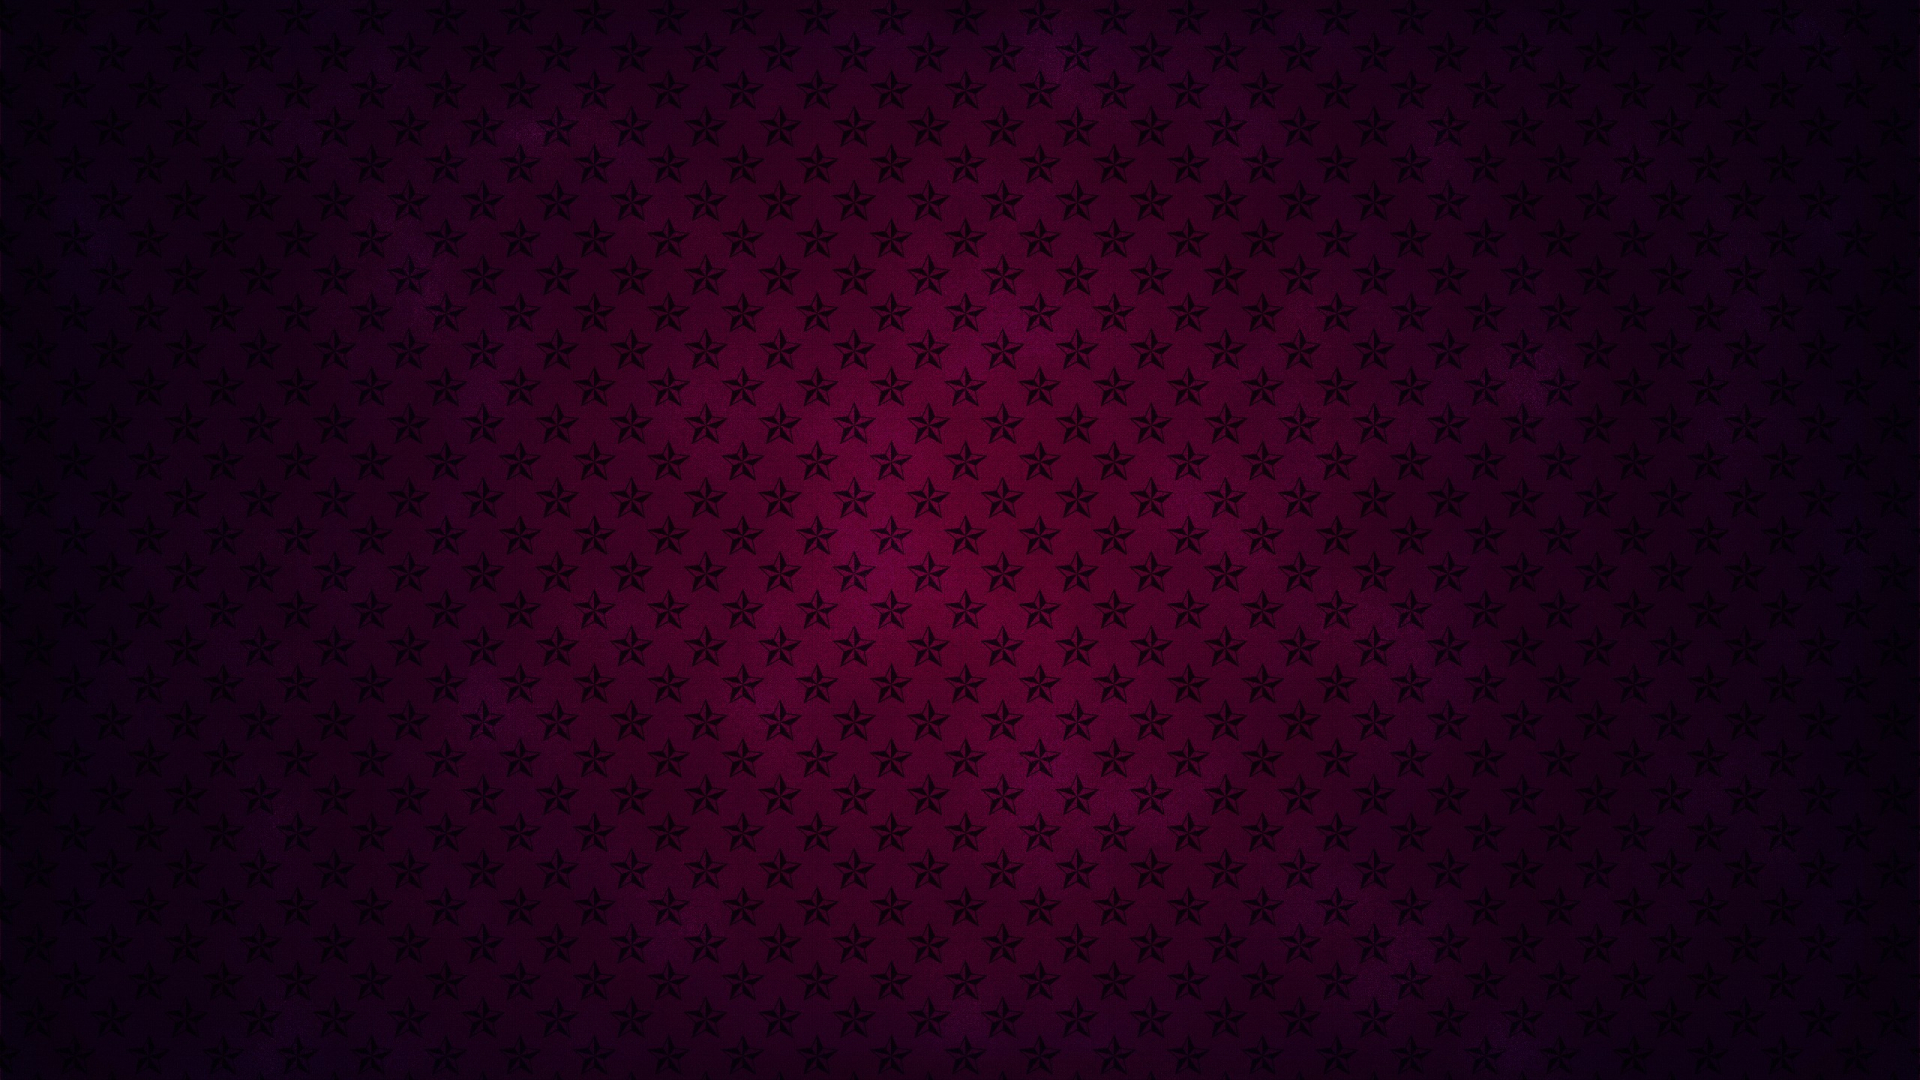 Free Download Pink Black Star Background Daily Pics Update Hd